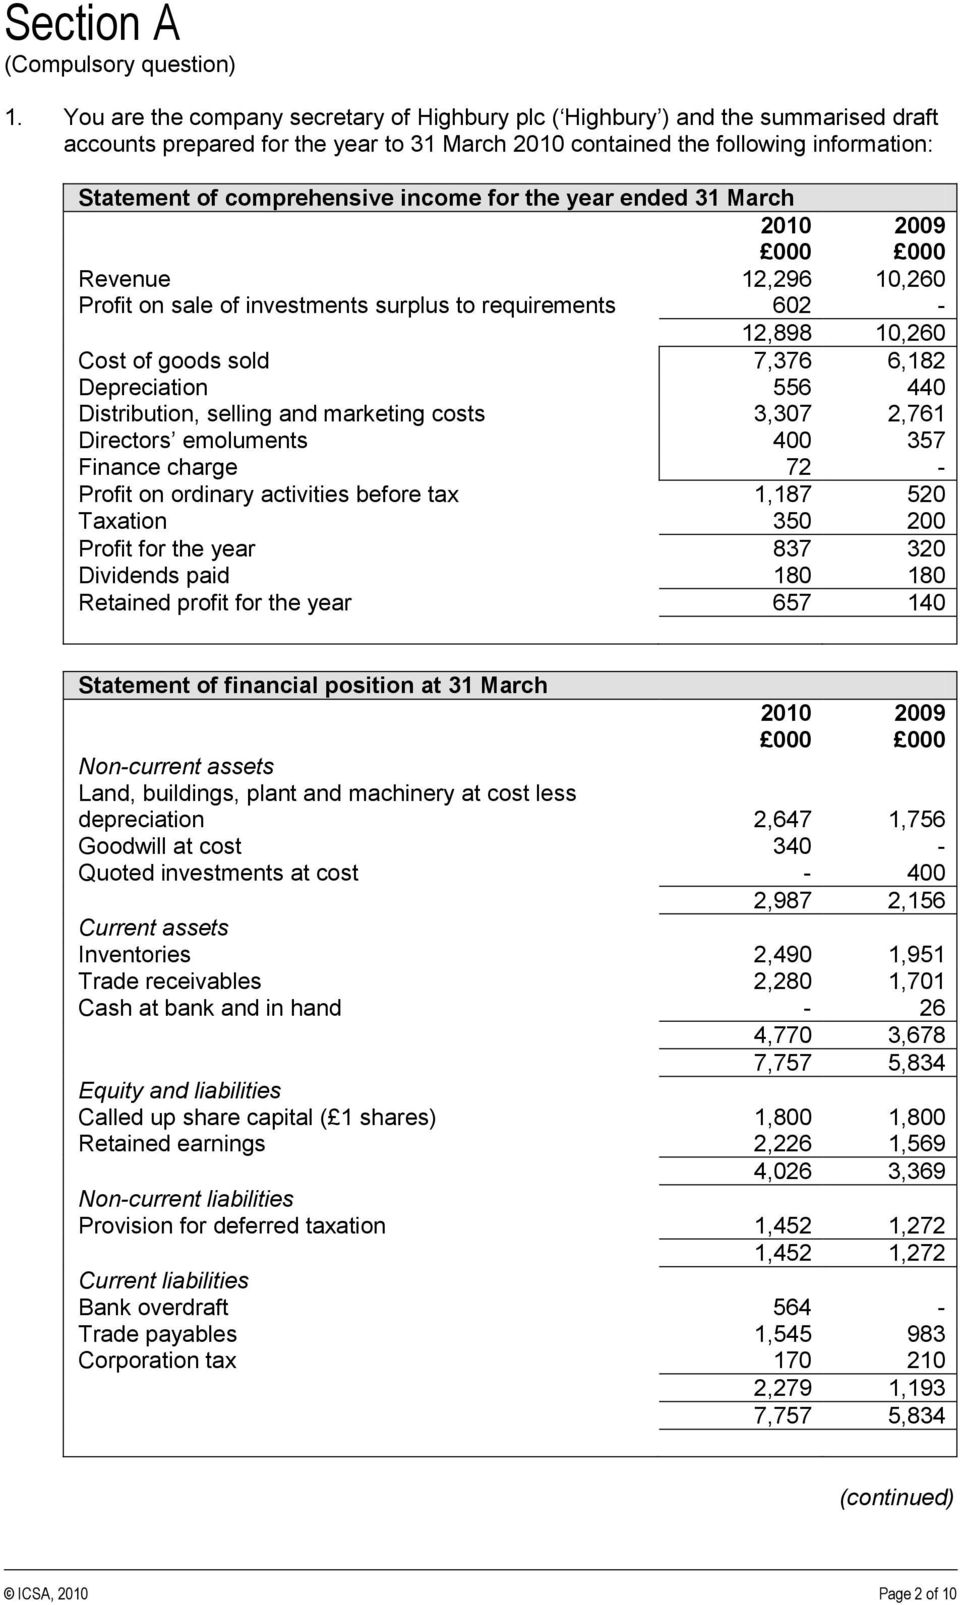 income for the year ended 31 March 2010 2009 000 000 Revenue 12,296 10,260 Profit on sale of investments surplus to requirements 602-12,898 10,260 Cost of goods sold 7,376 6,182 Depreciation 556 440